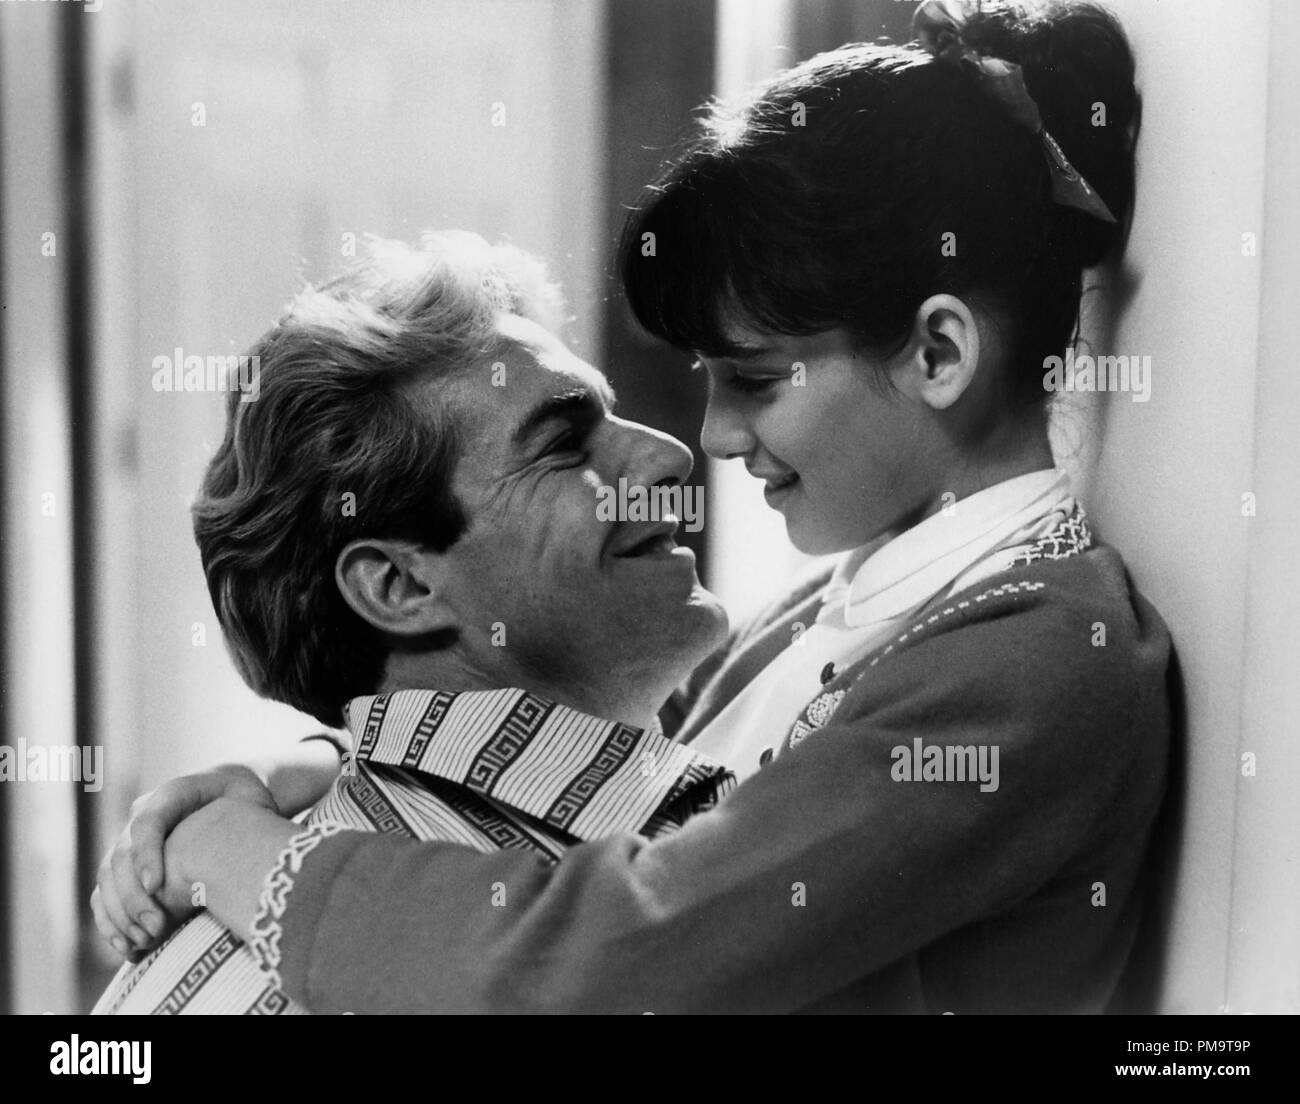 Studio Publicity Still From Great Balls Of Fire Dennis Quaid Winona Ryder C 1988 Orion All Rights Reserved File Reference 31694192THA For Editorial Use